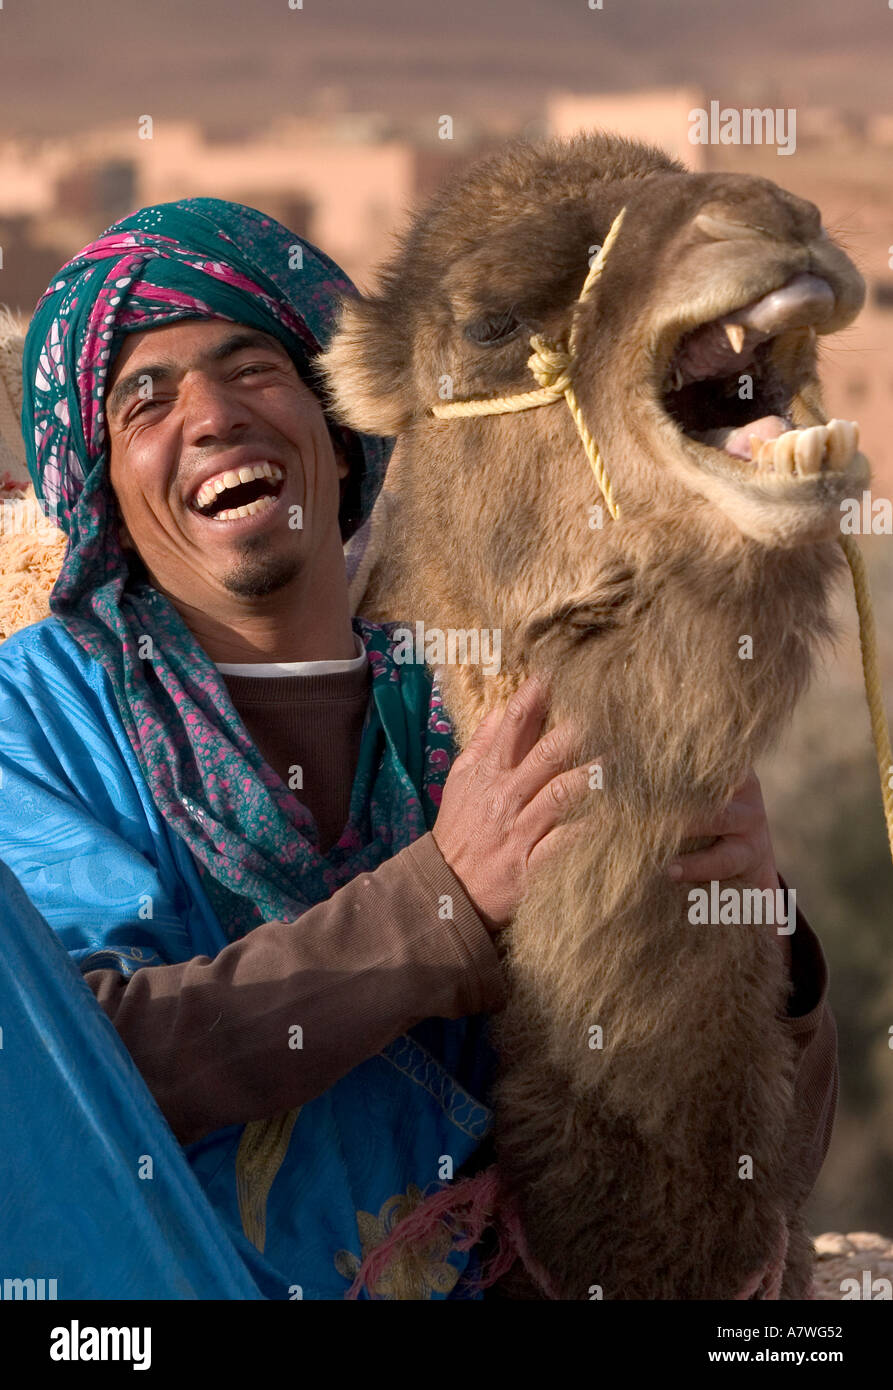 a-man-and-his-camel-laugh-as-they-sit-in